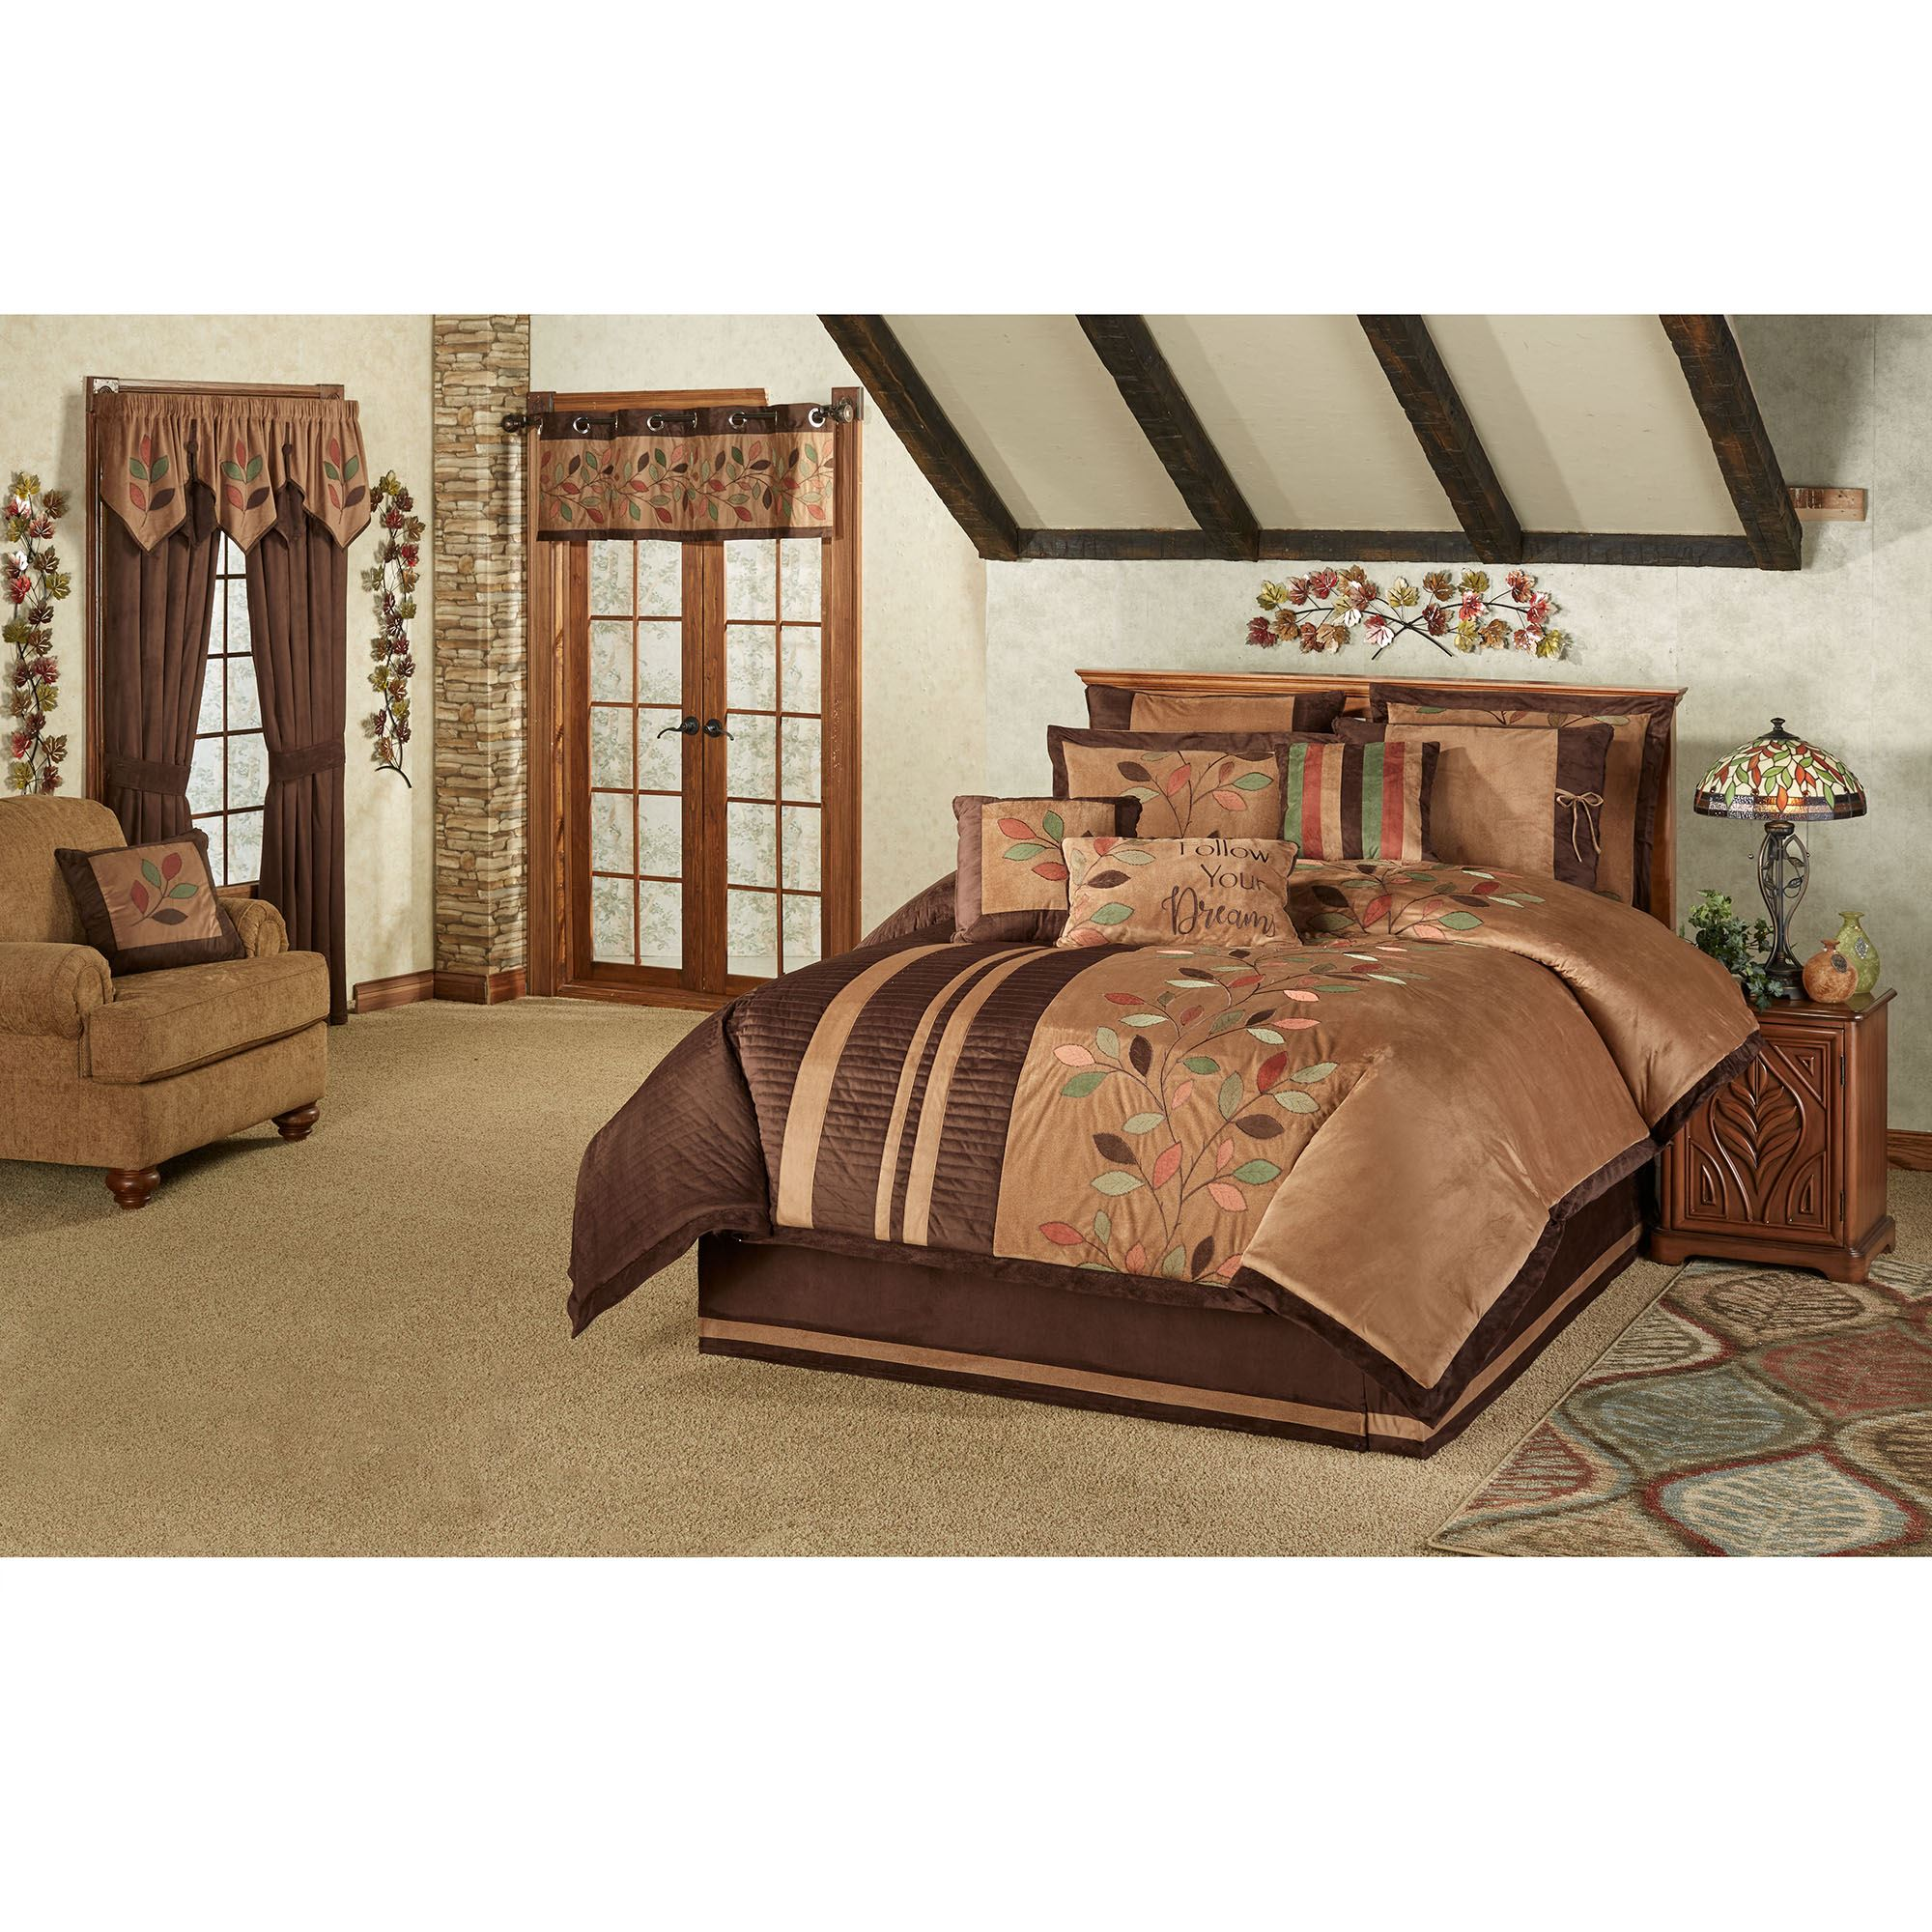 shld micro city piece s set url getimage and loft black suede home fashions queen cloudfront q l gray comforter net